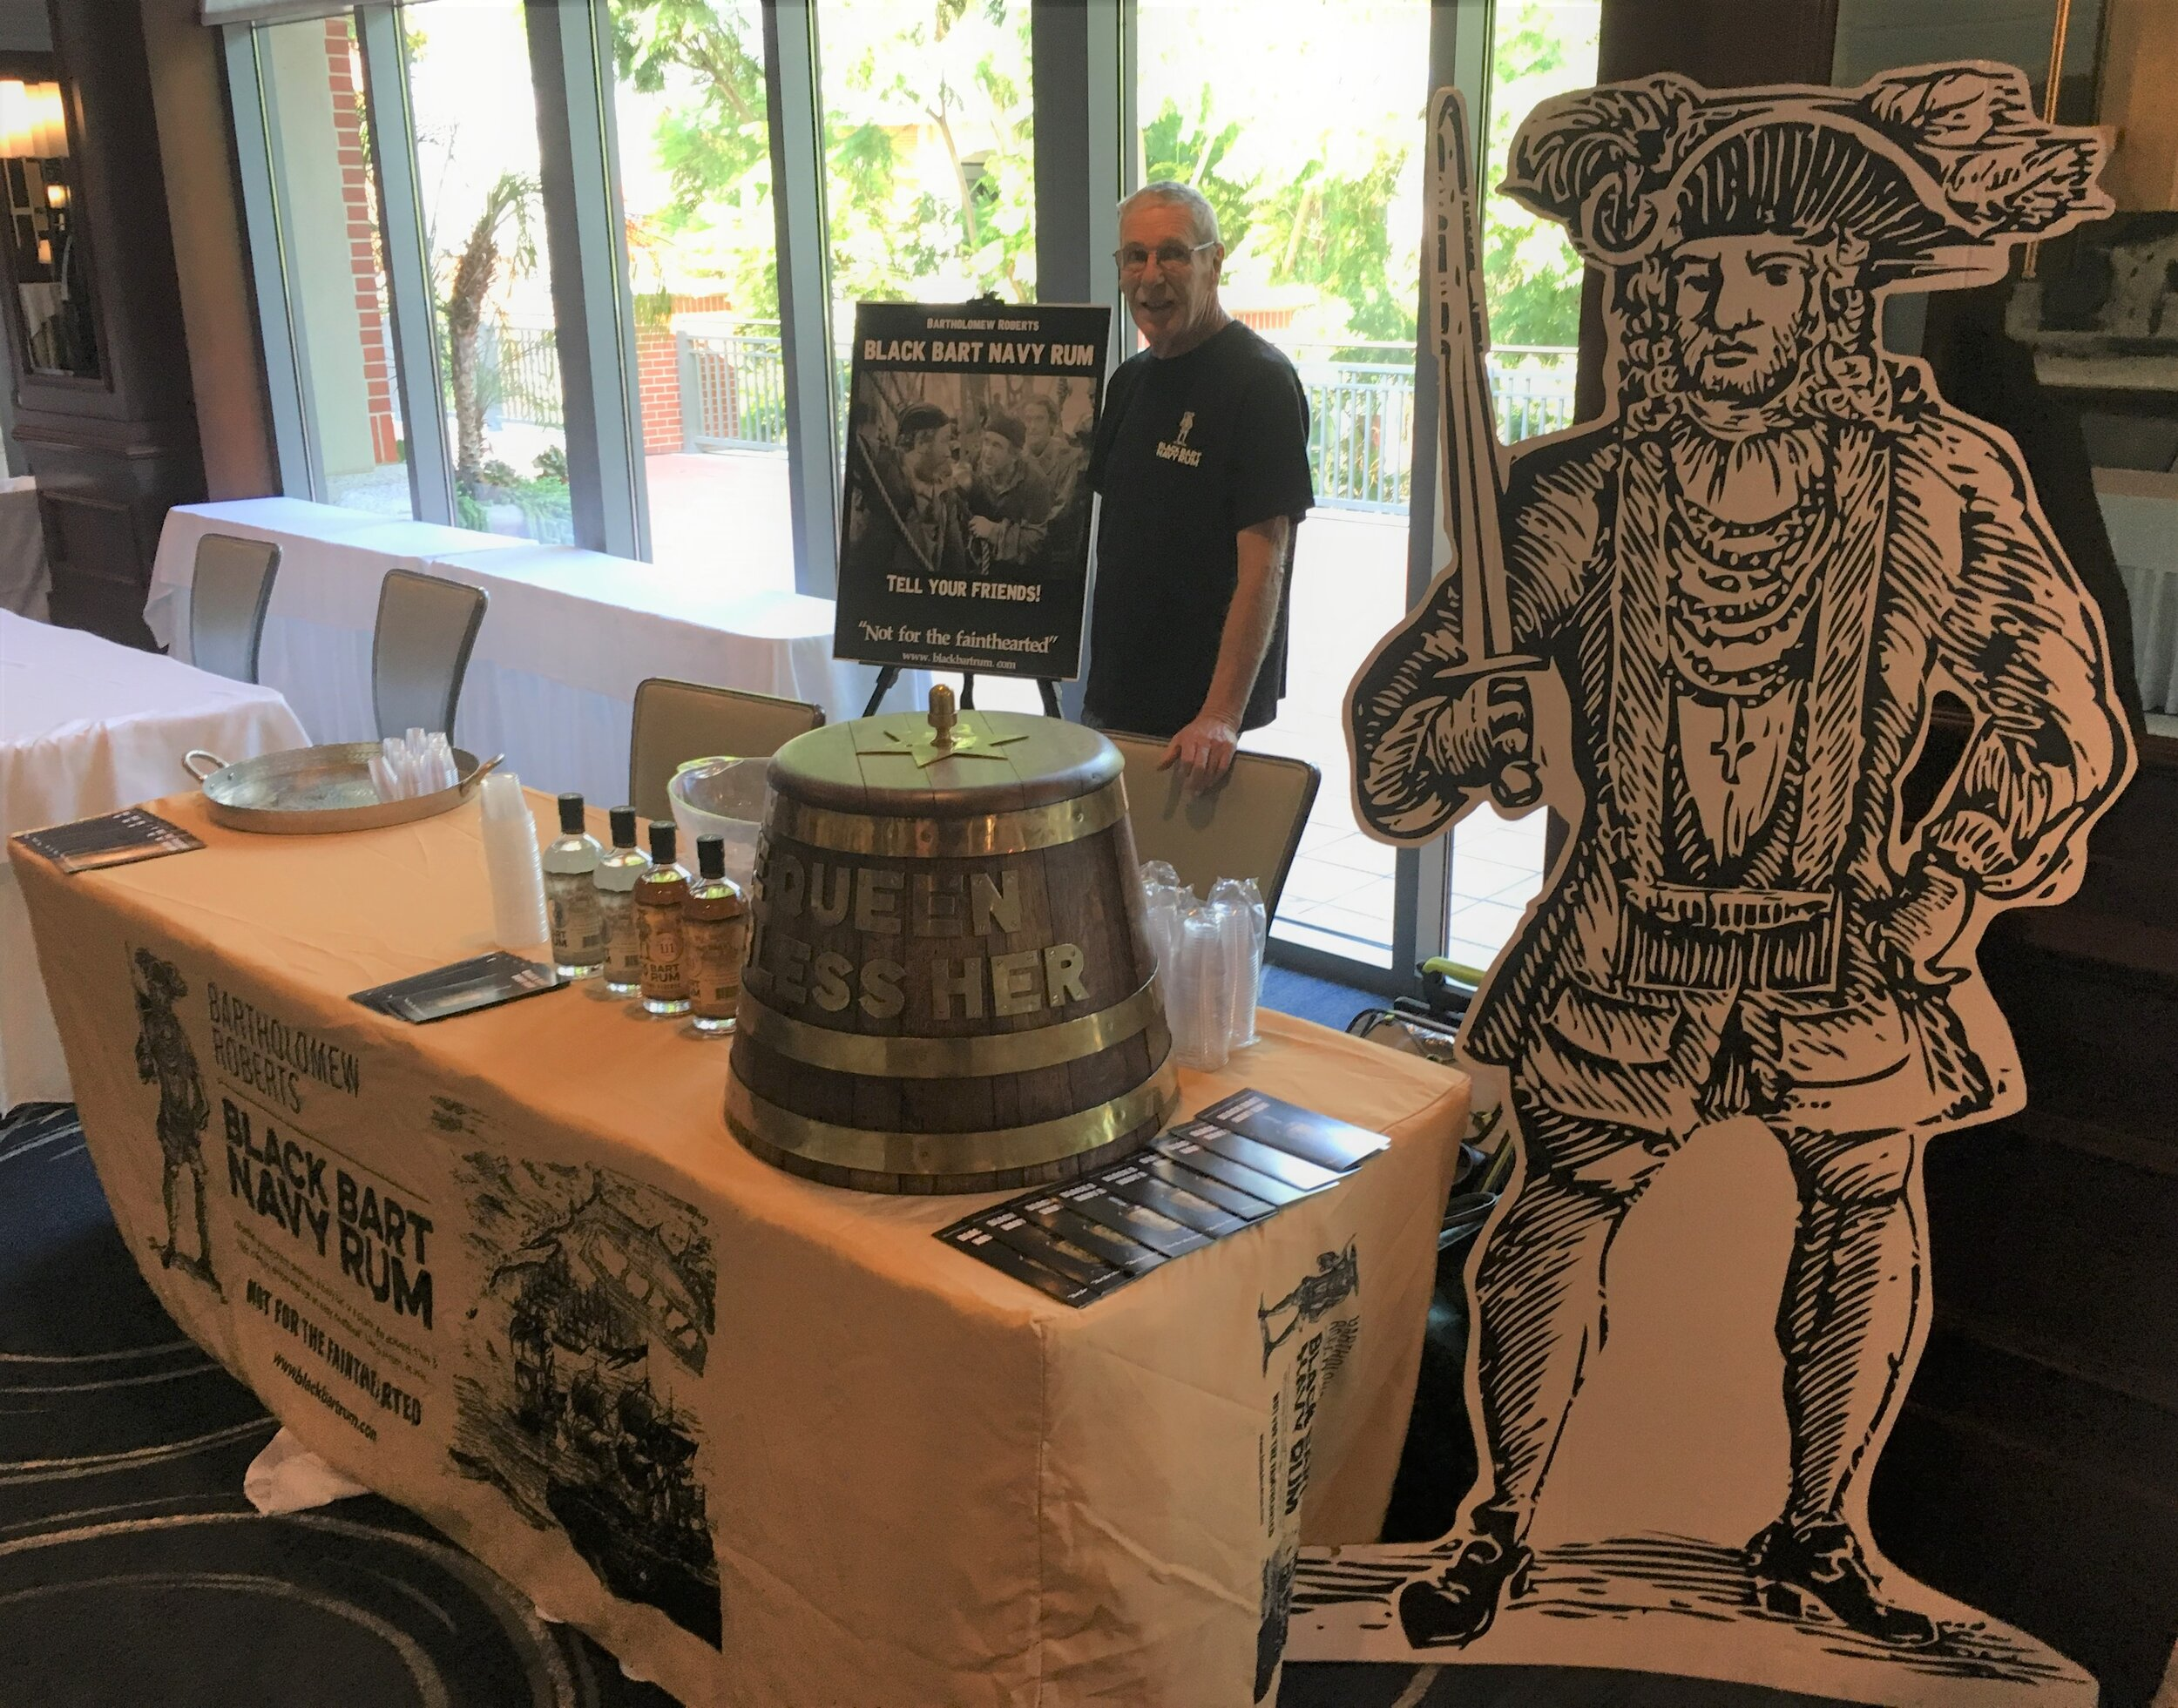 Black Bart Navy Rum booth at Taste of Conejo (October 11, 2019)